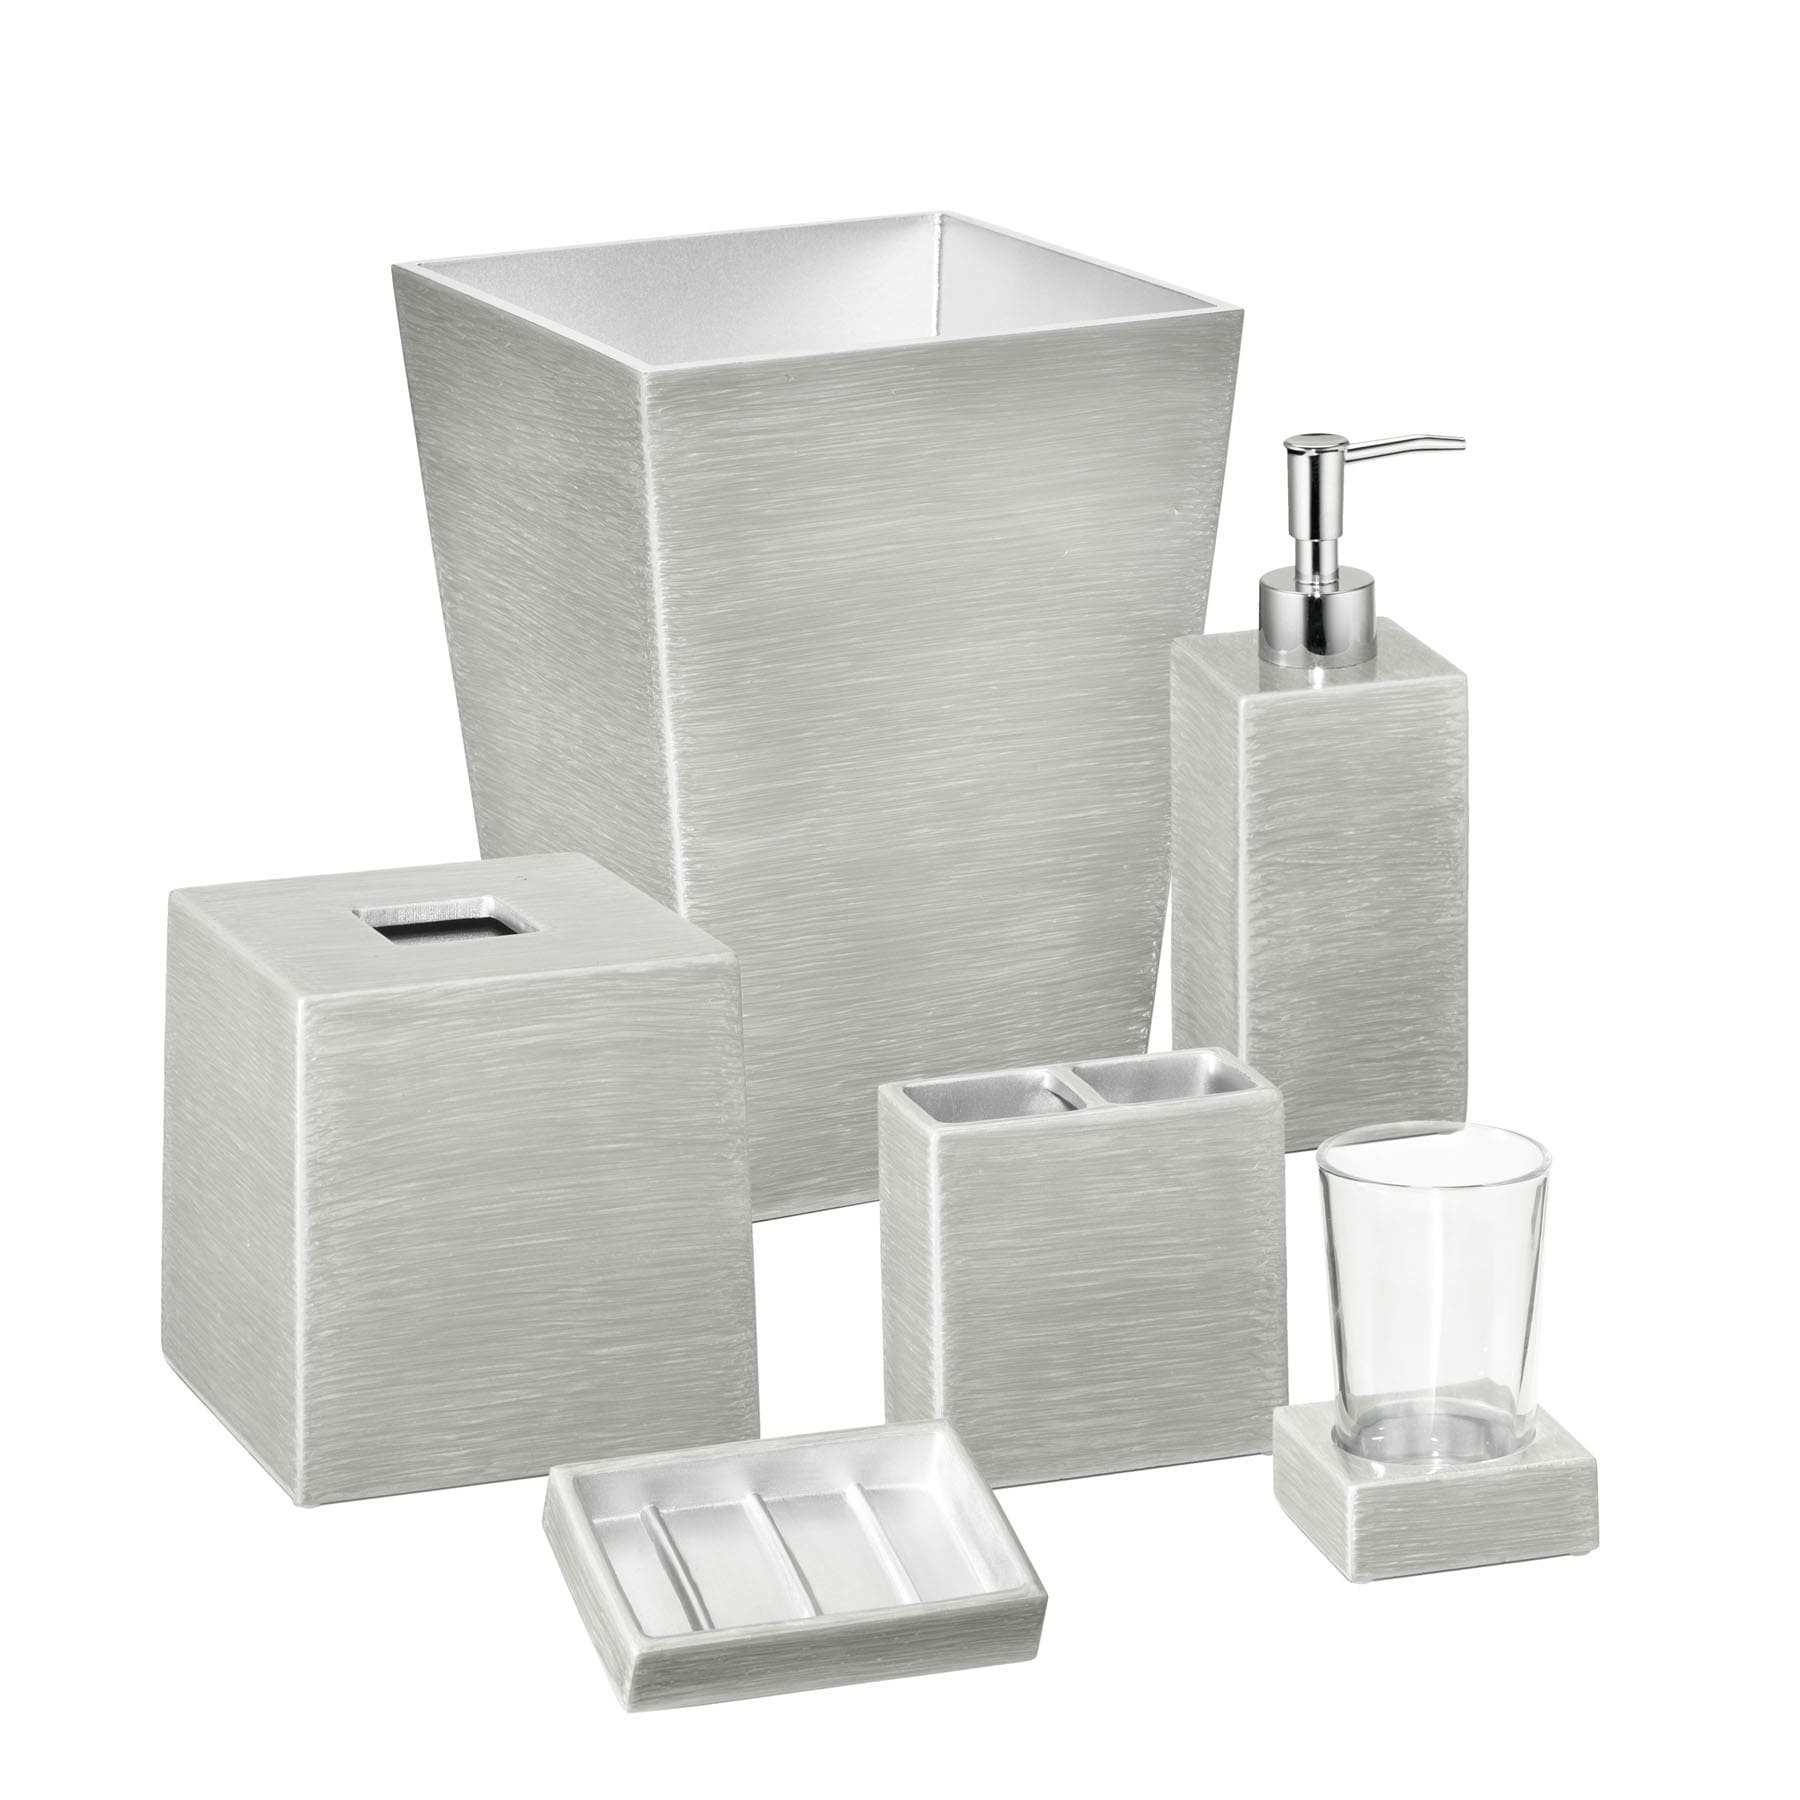 Shop Mike and Ally Venetian Designer Hand Enameled Bath Accessory ...